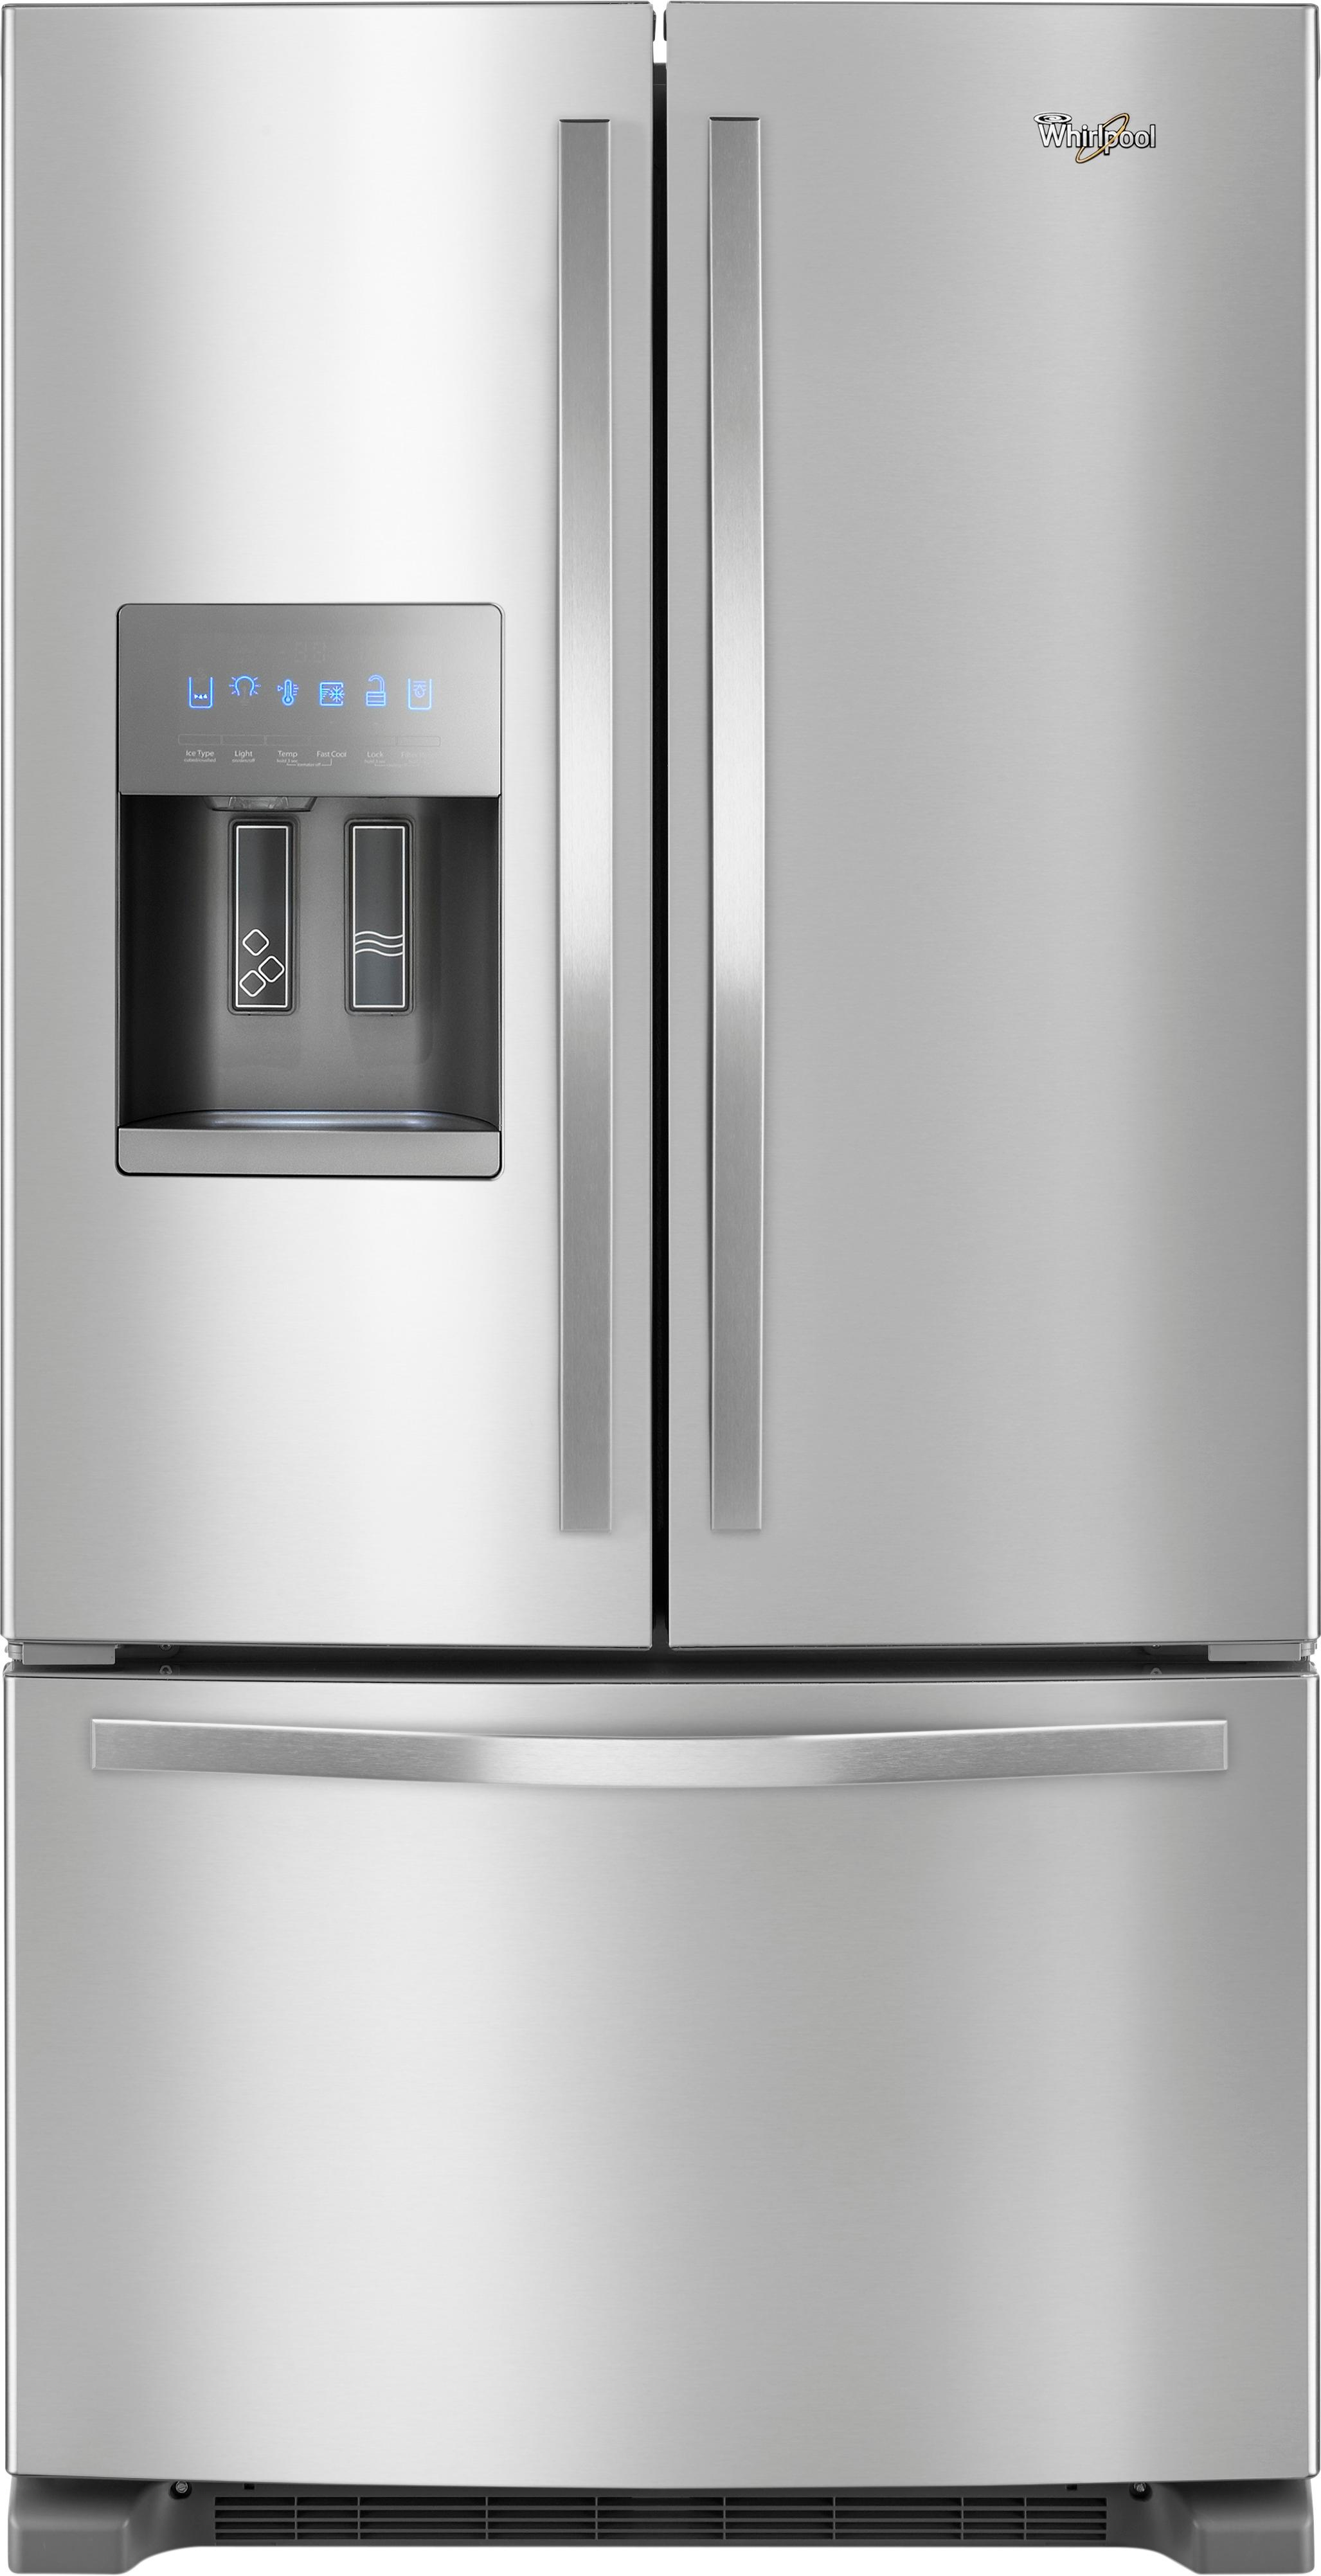 Whirlpool Appliances Canada Whirlpool 24 7 Cu Ft French Door Refrigerator Stainless Steel